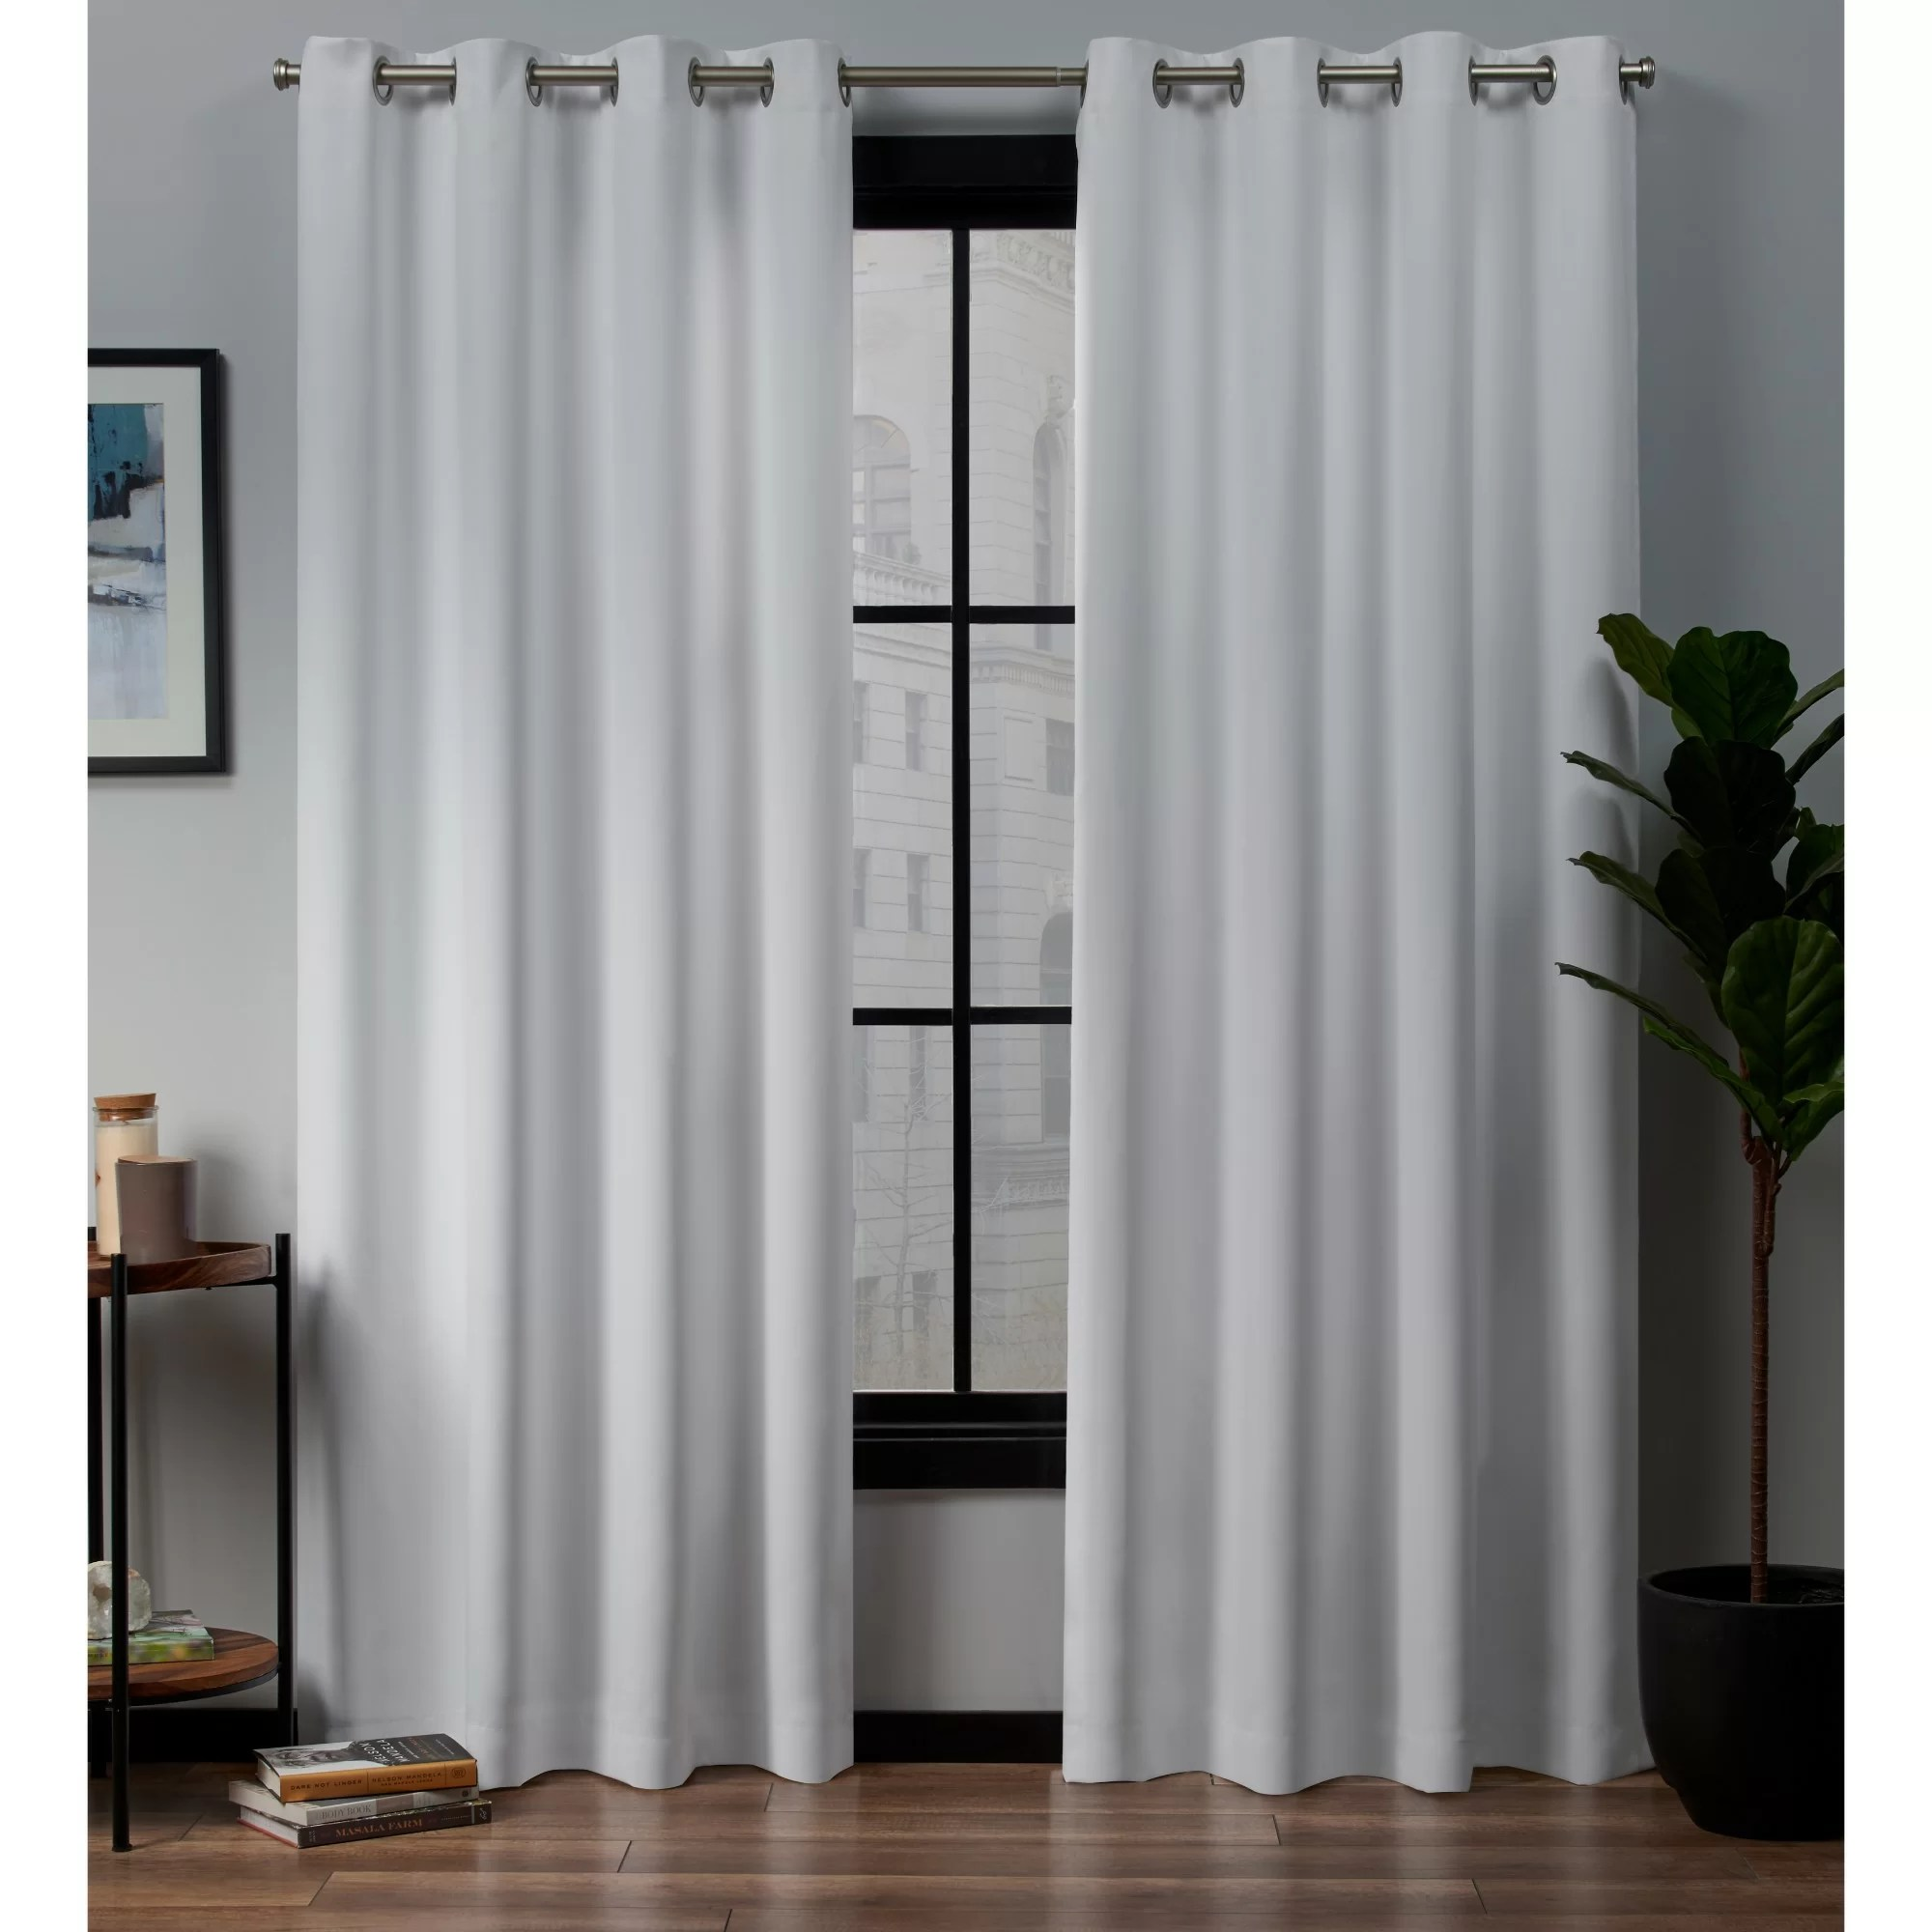 Thermal Patio Door Curtains With Grommets Loraine Solid Blackout Thermal Grommet Curtain Panels